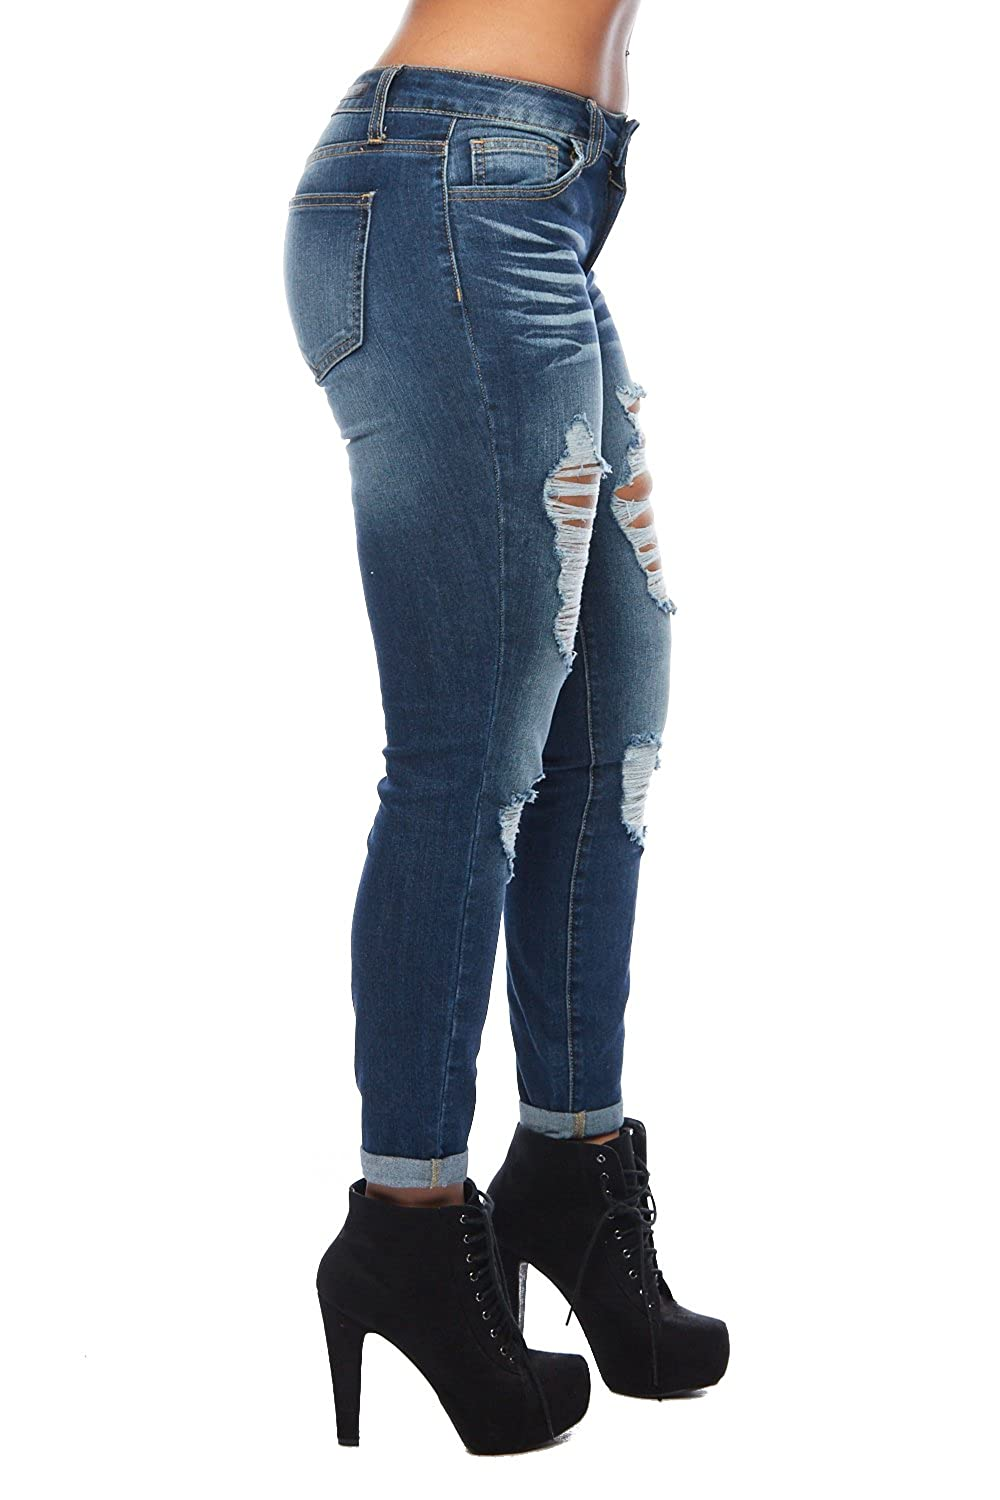 GENx Womens Rolled Up Destroyed Washed Skinny Casual Jeans WV74099